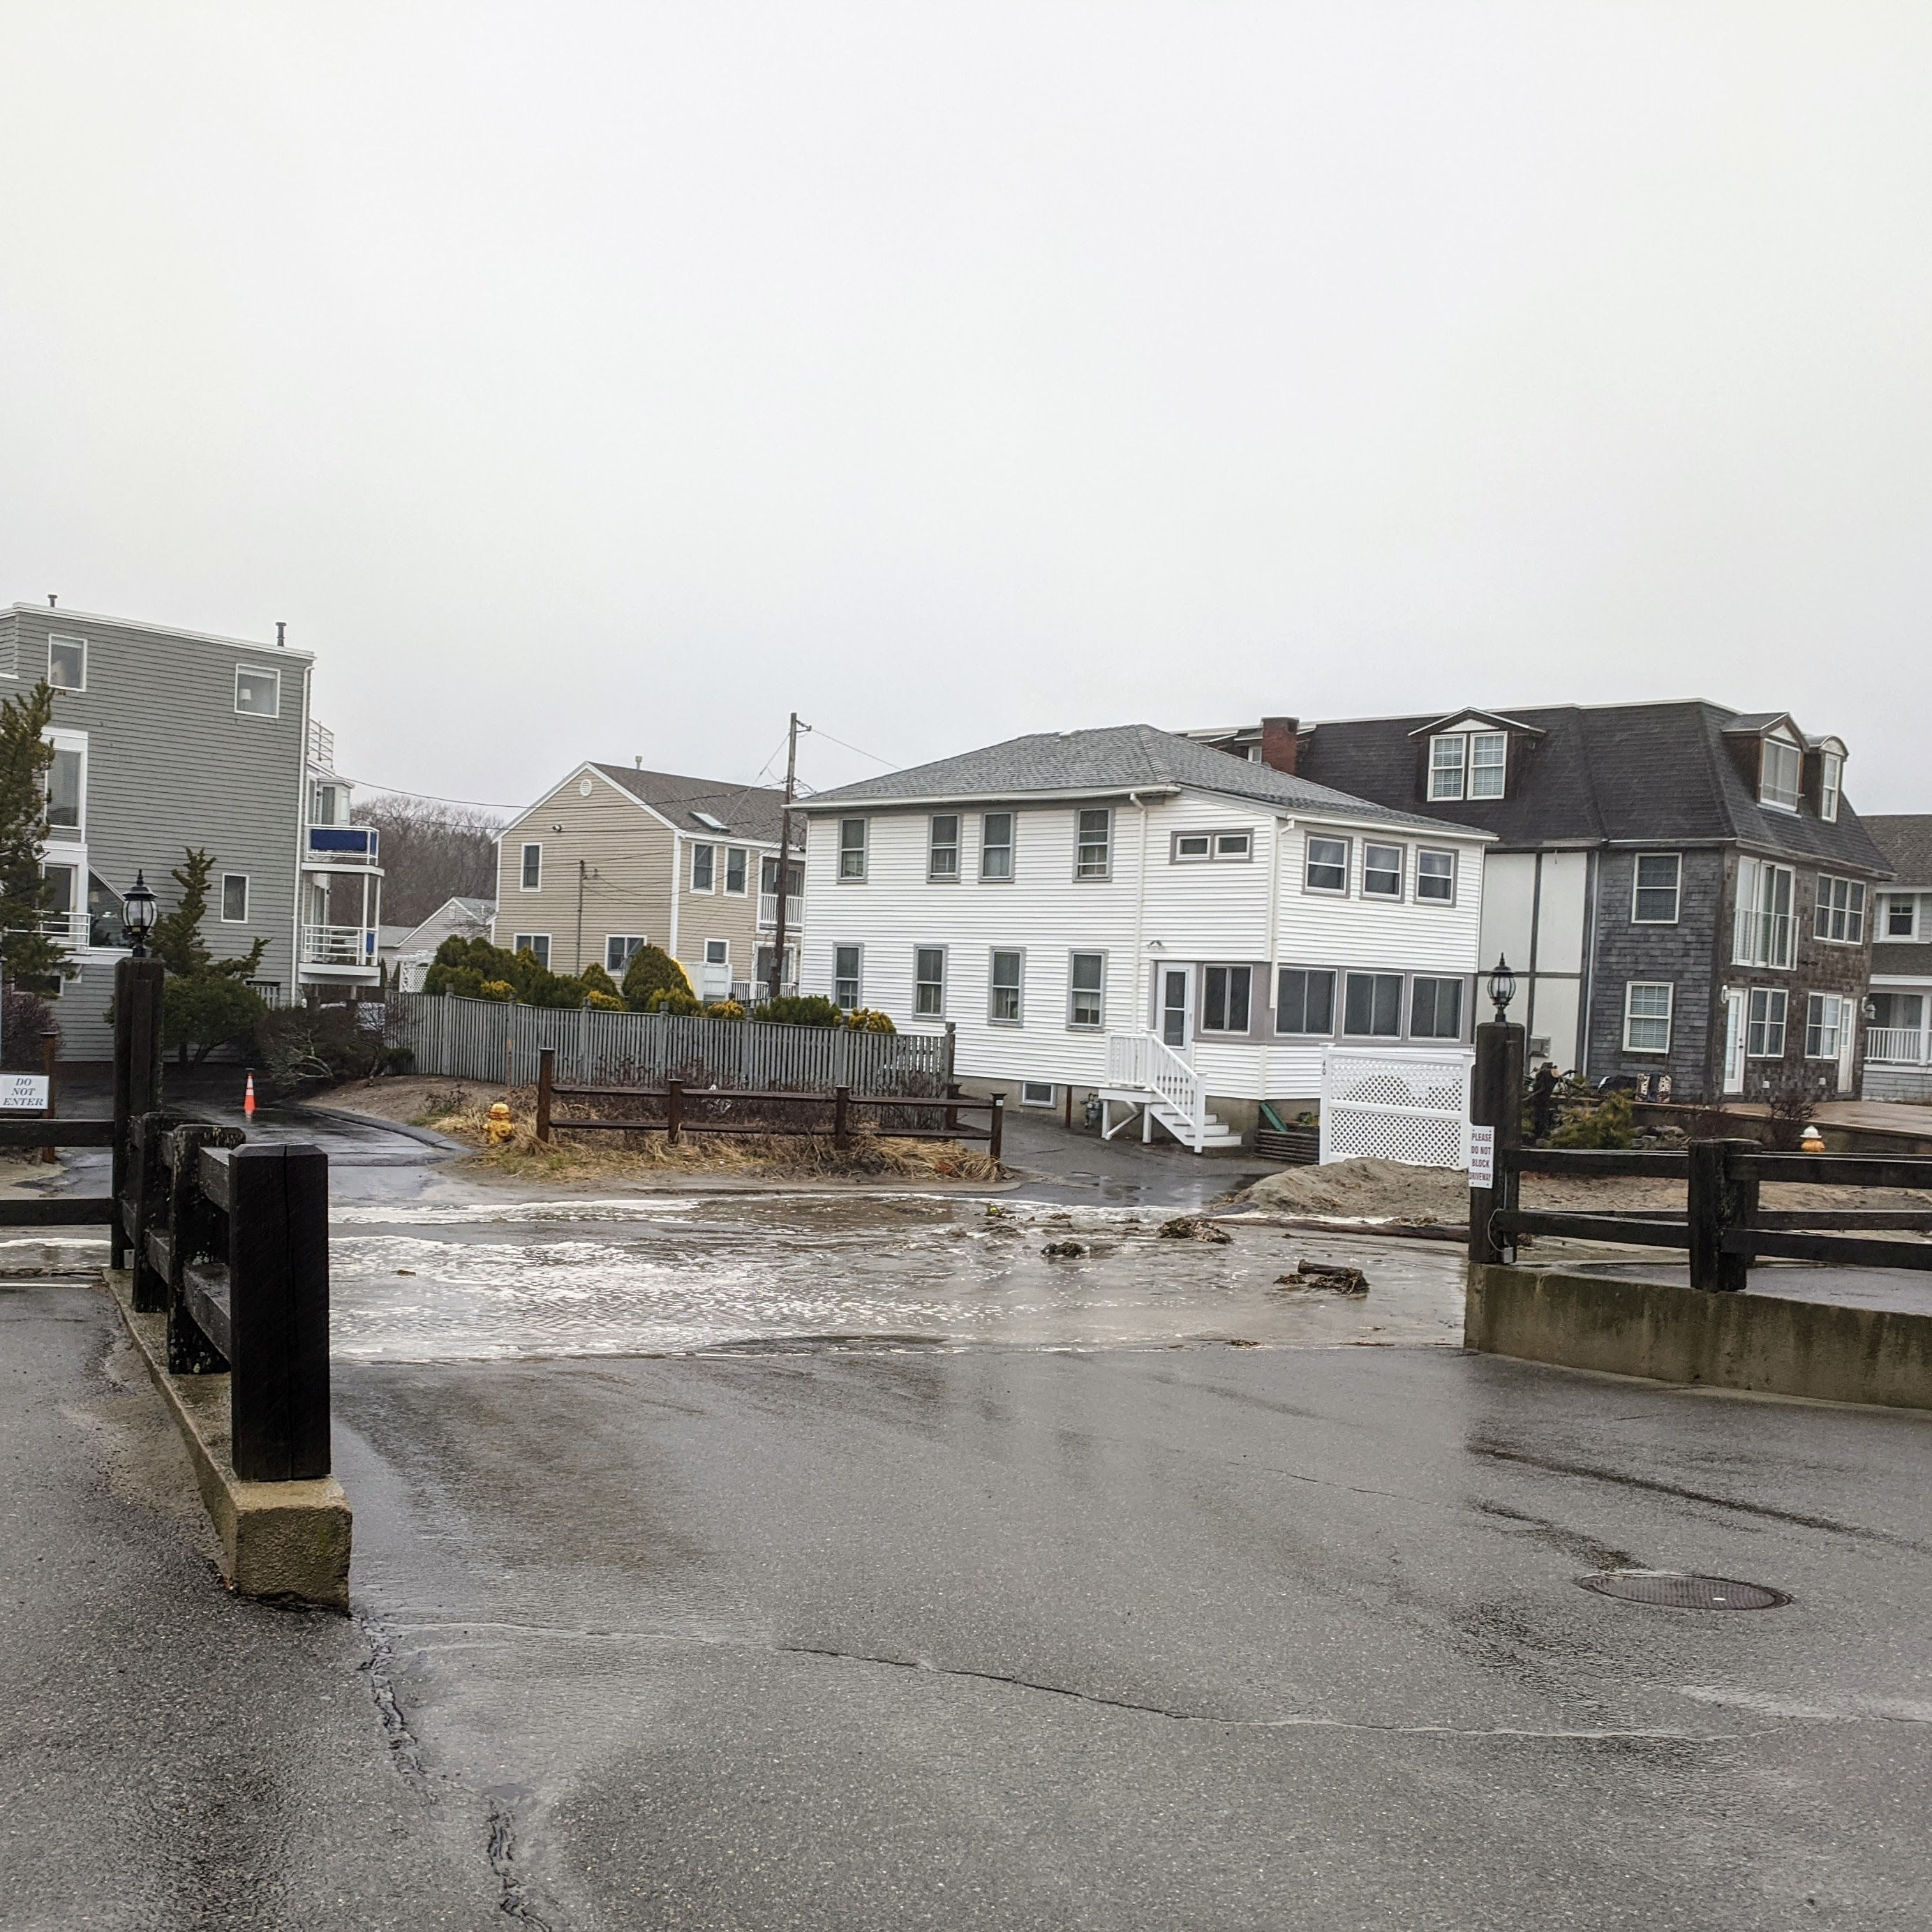 super high tide floods into street_ April 3 2020_Long Beach Gloucester Mass end ©c ryan